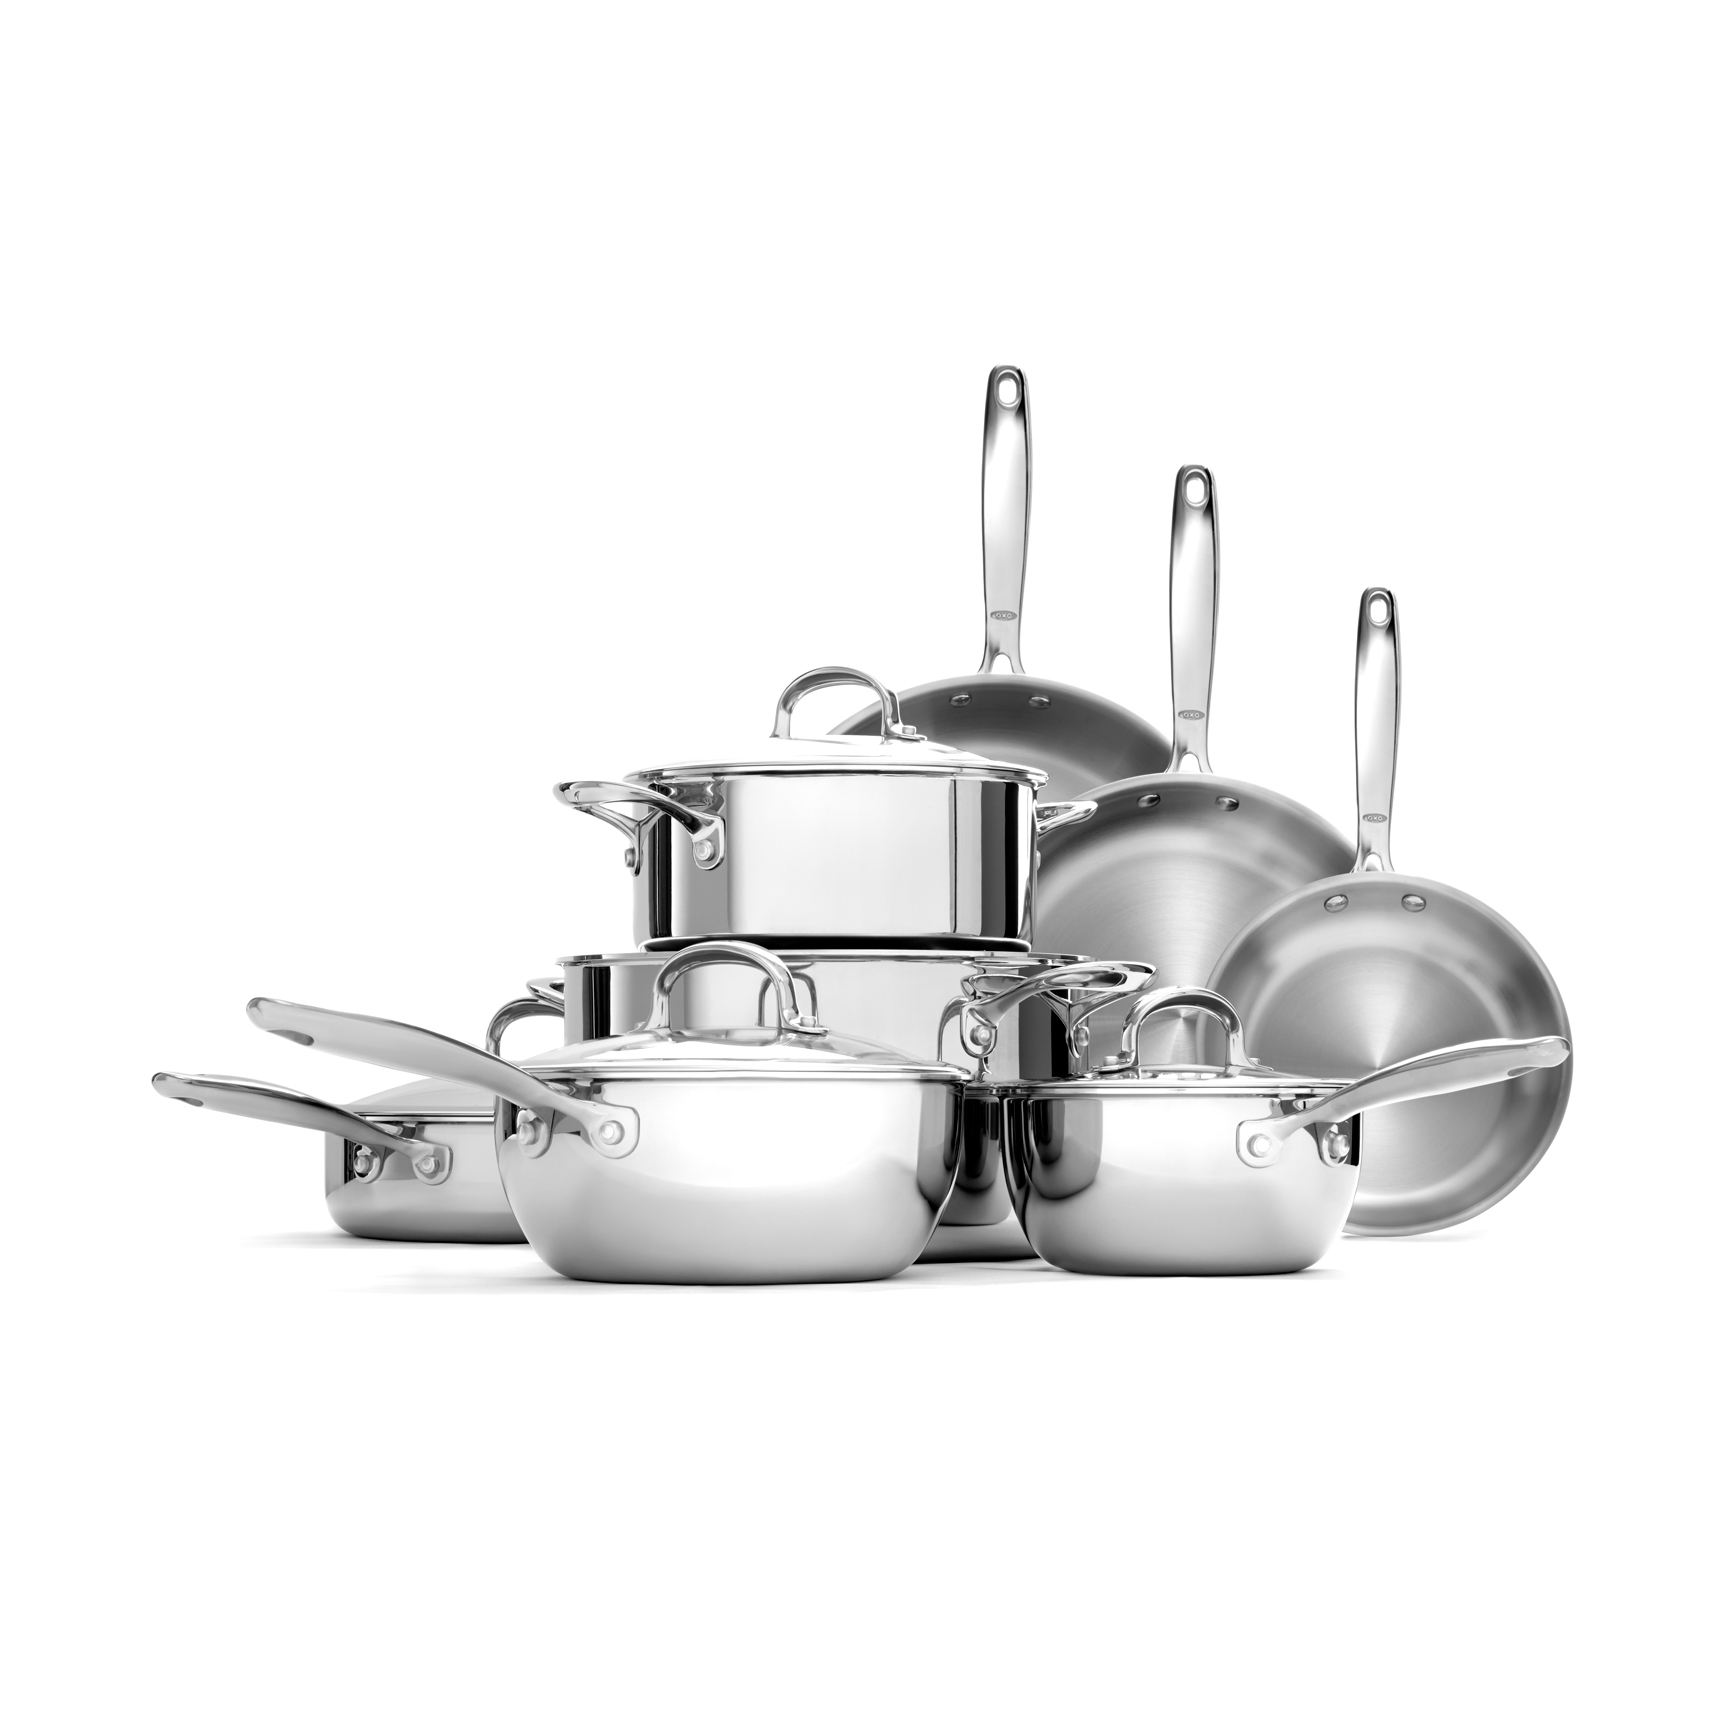 Stainless Steel Pro 13 Piece Cookware Set